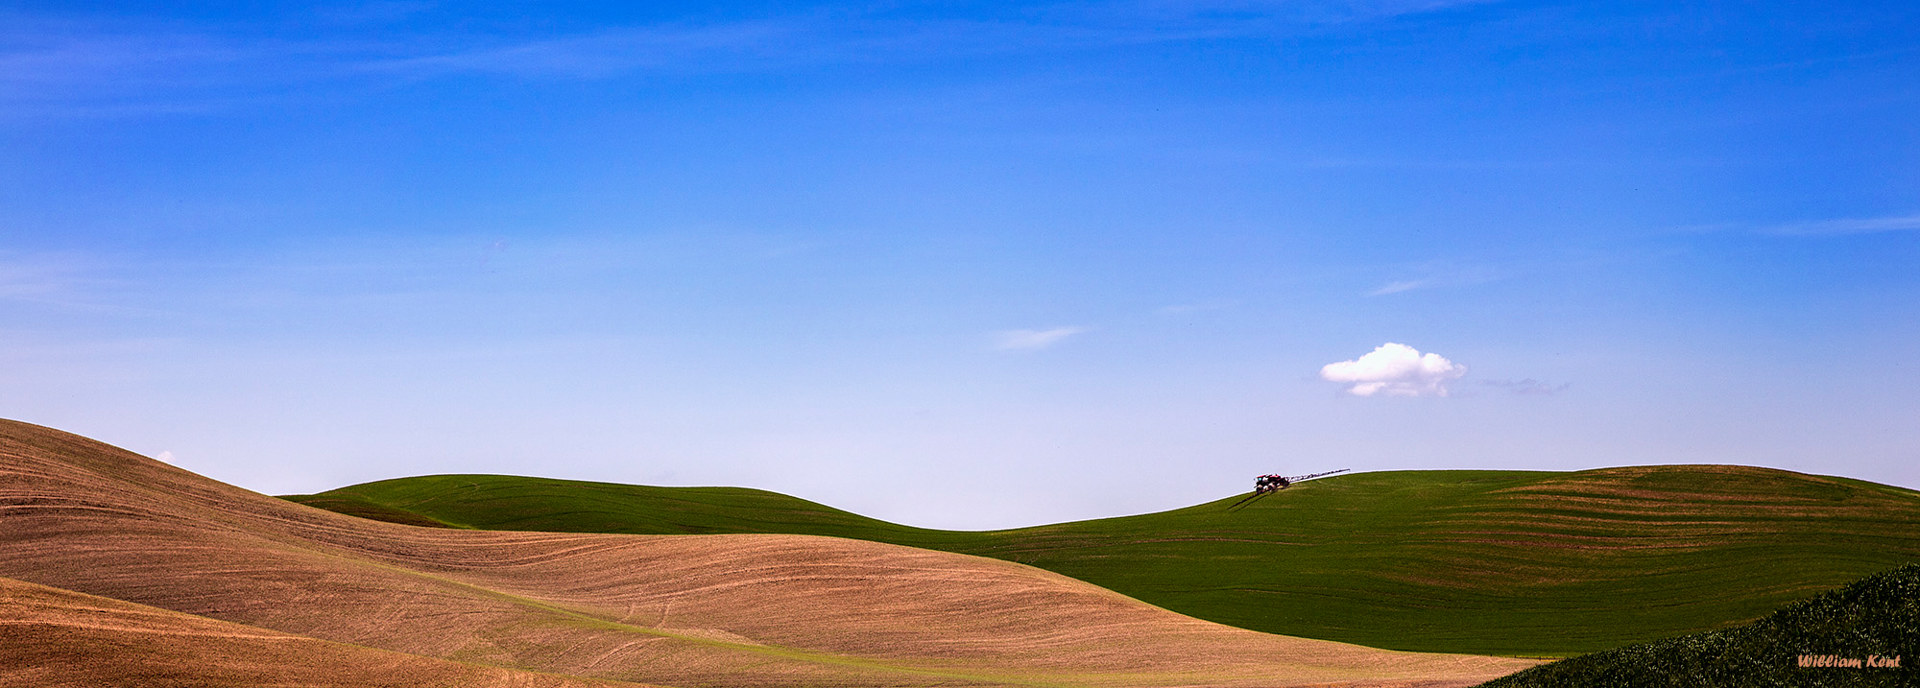 Palouse 4 by William Kent